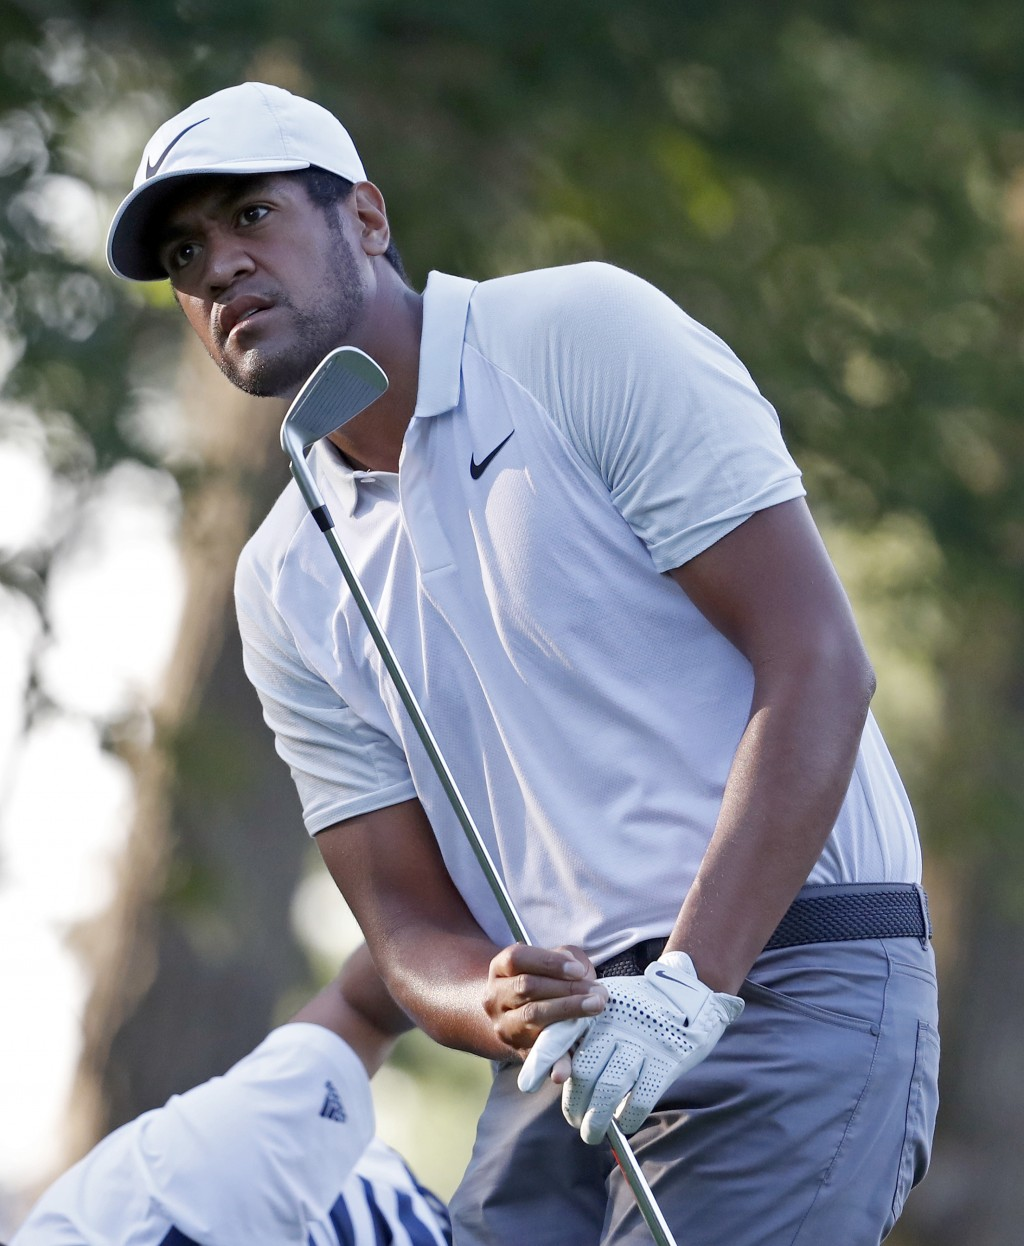 Tony Finau watches his tee shot on the 11th hole during the first round of the PGA Championship golf tournament at Bellerive Country Club, Thursday, A